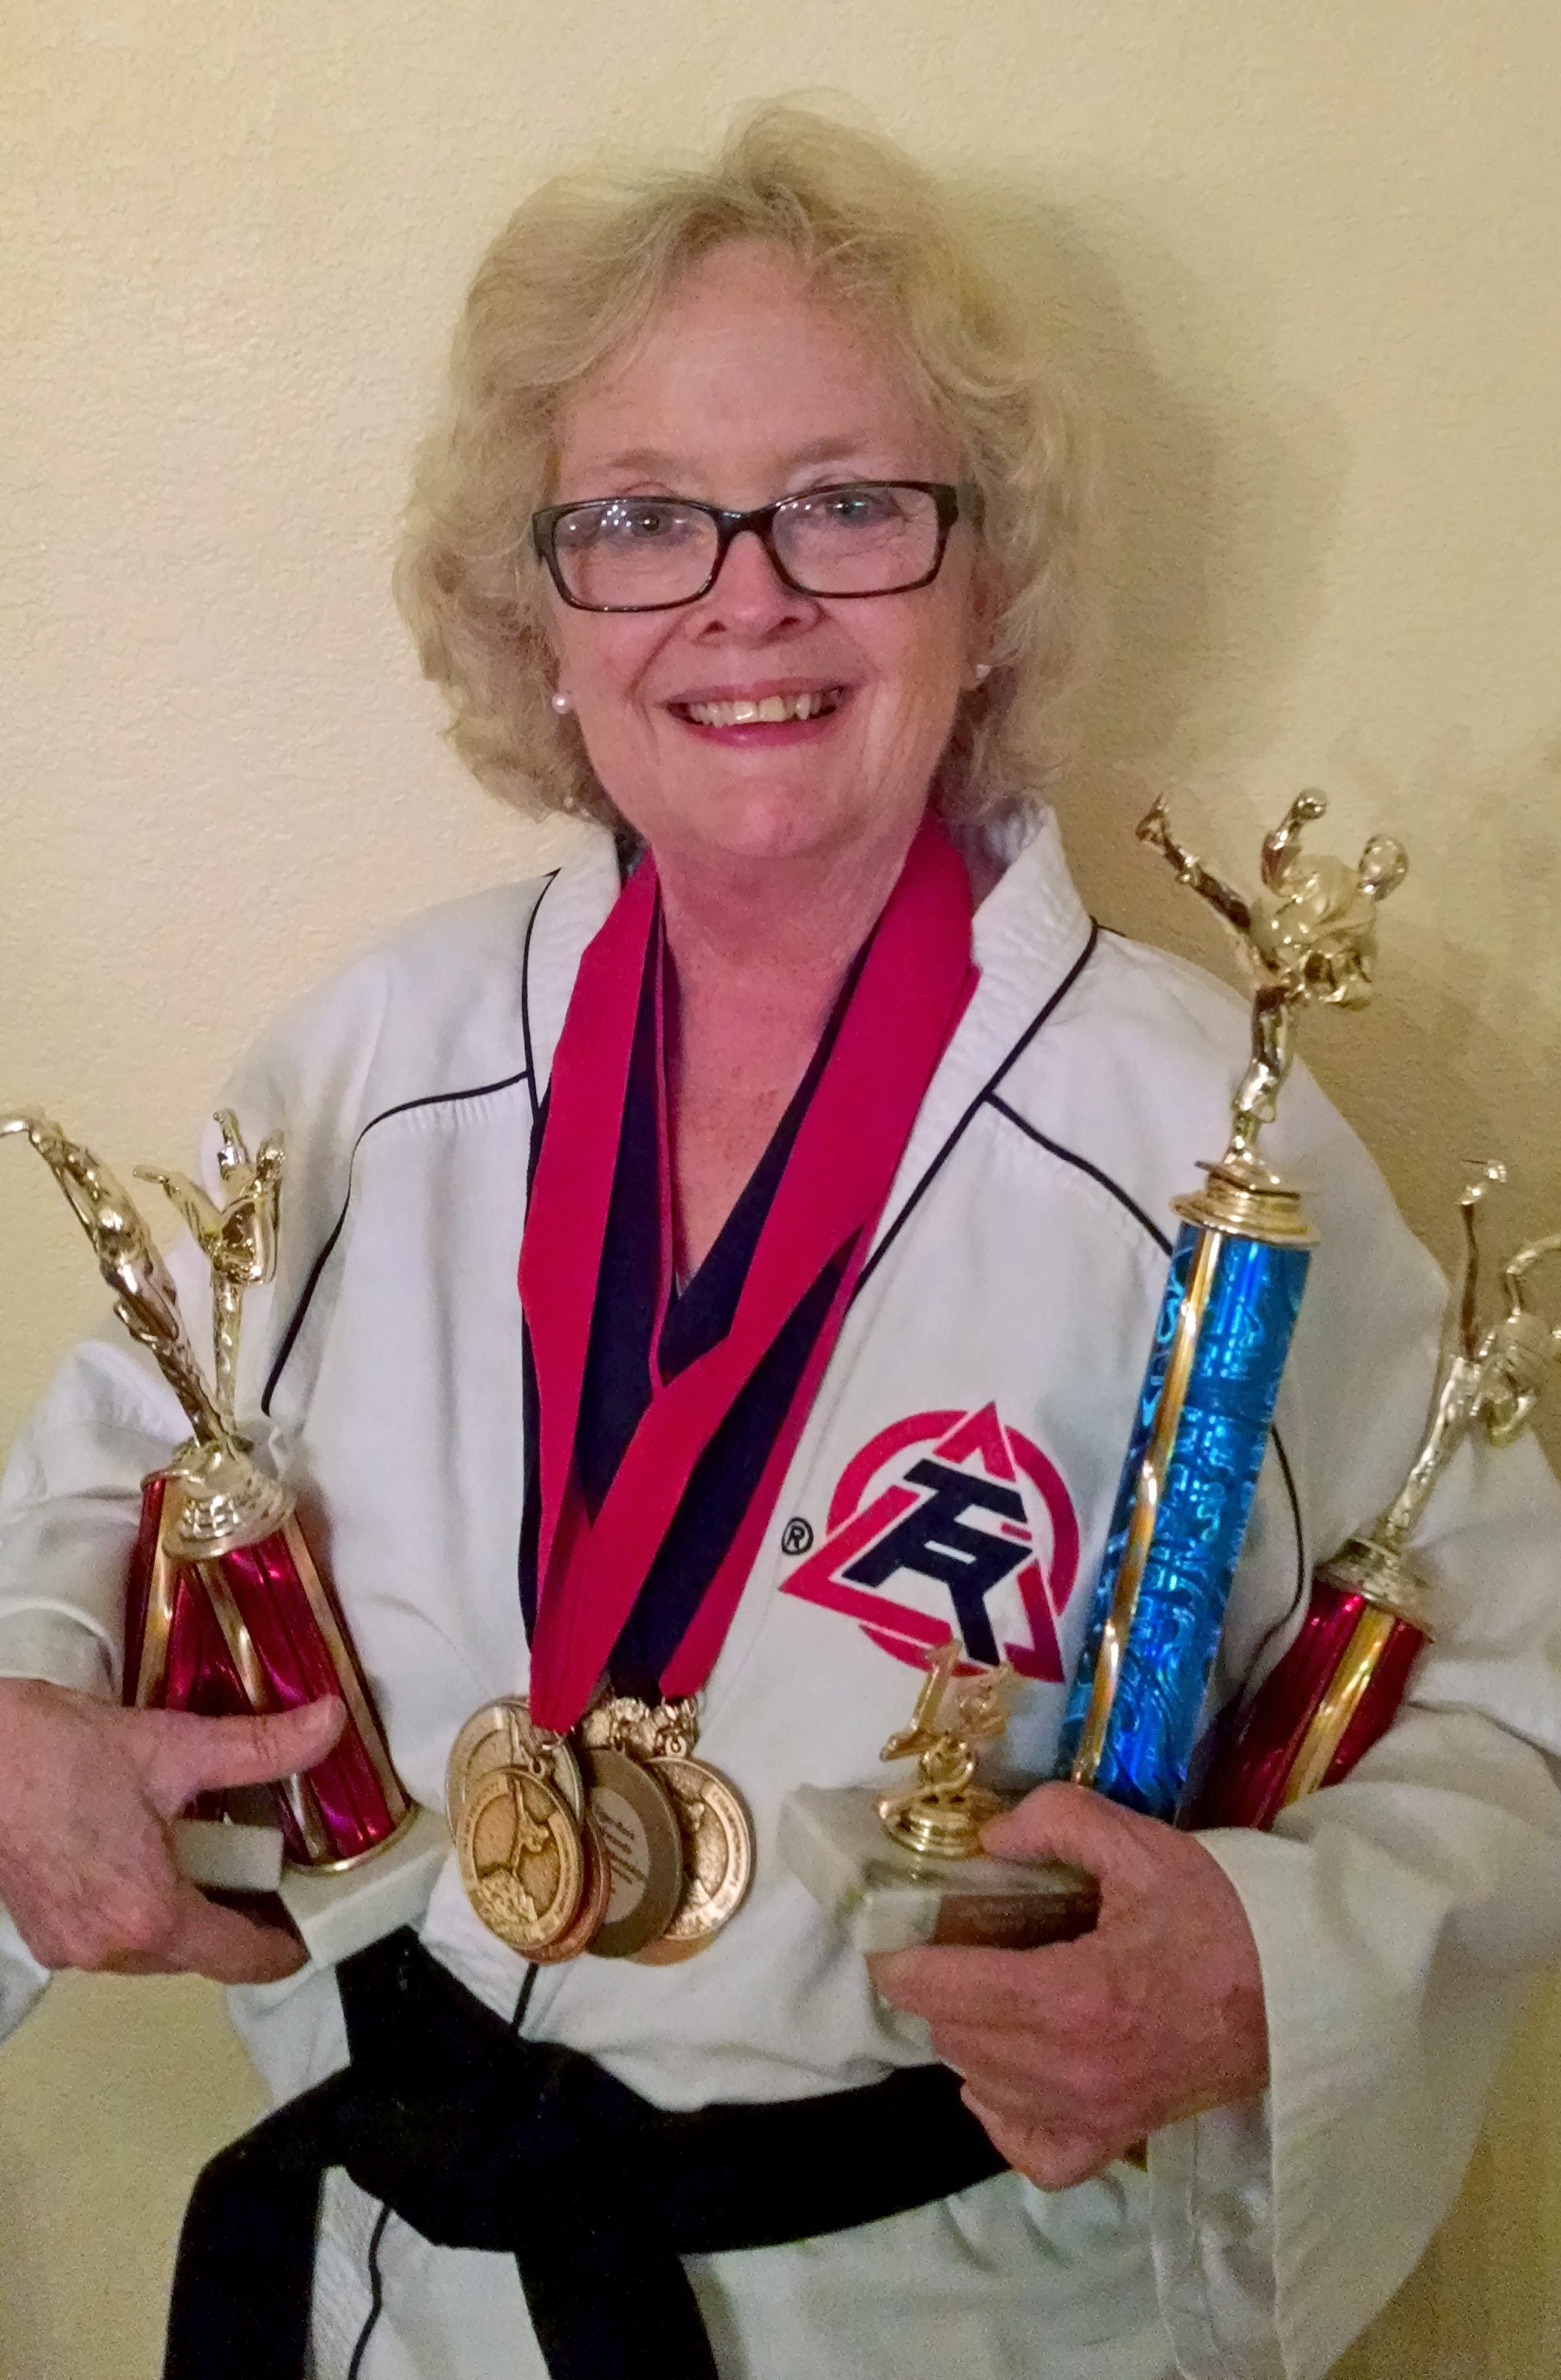 Taekwondo champion Paula Johnson is back in action after beating acoustic neuroma.